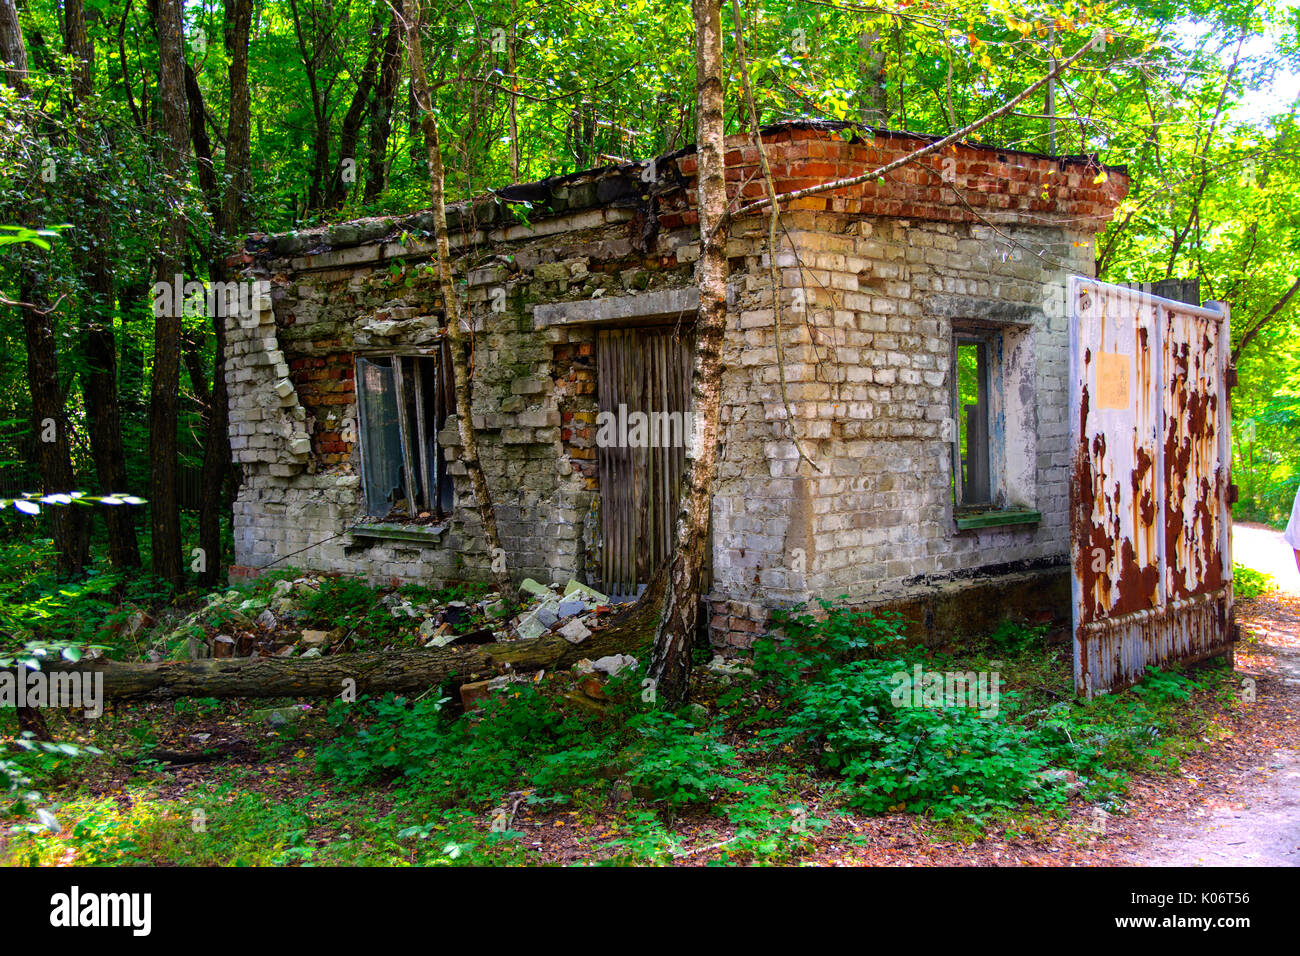 The old abandoned building of the checkpoint. Dead military unit. Consequences of the Chernobyl nuclear disaster, August 2017. - Stock Image